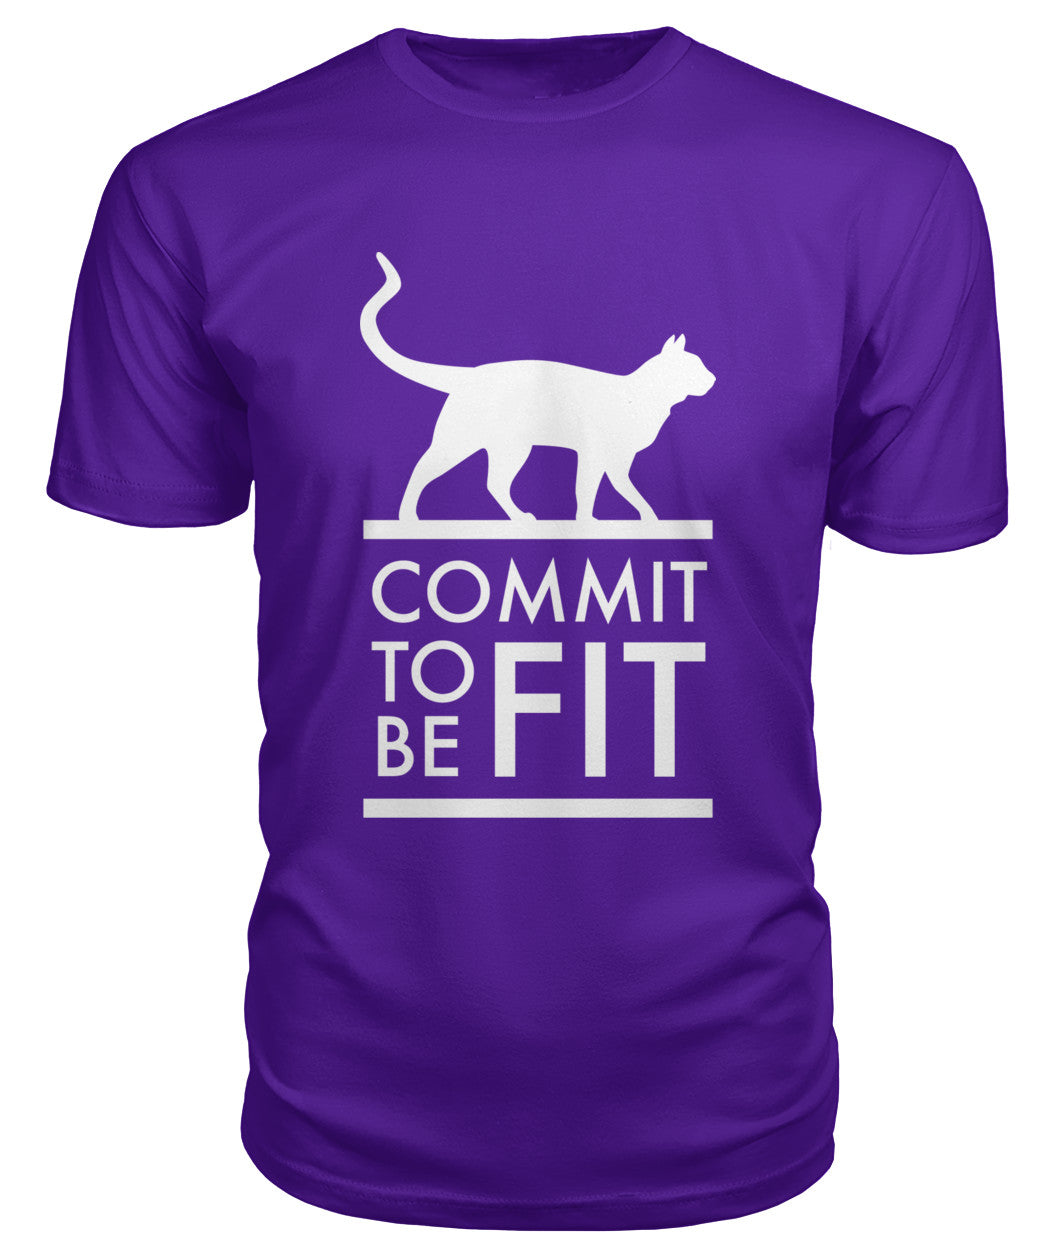 Commit to Be Fit - Unisex Premium T-Shirt